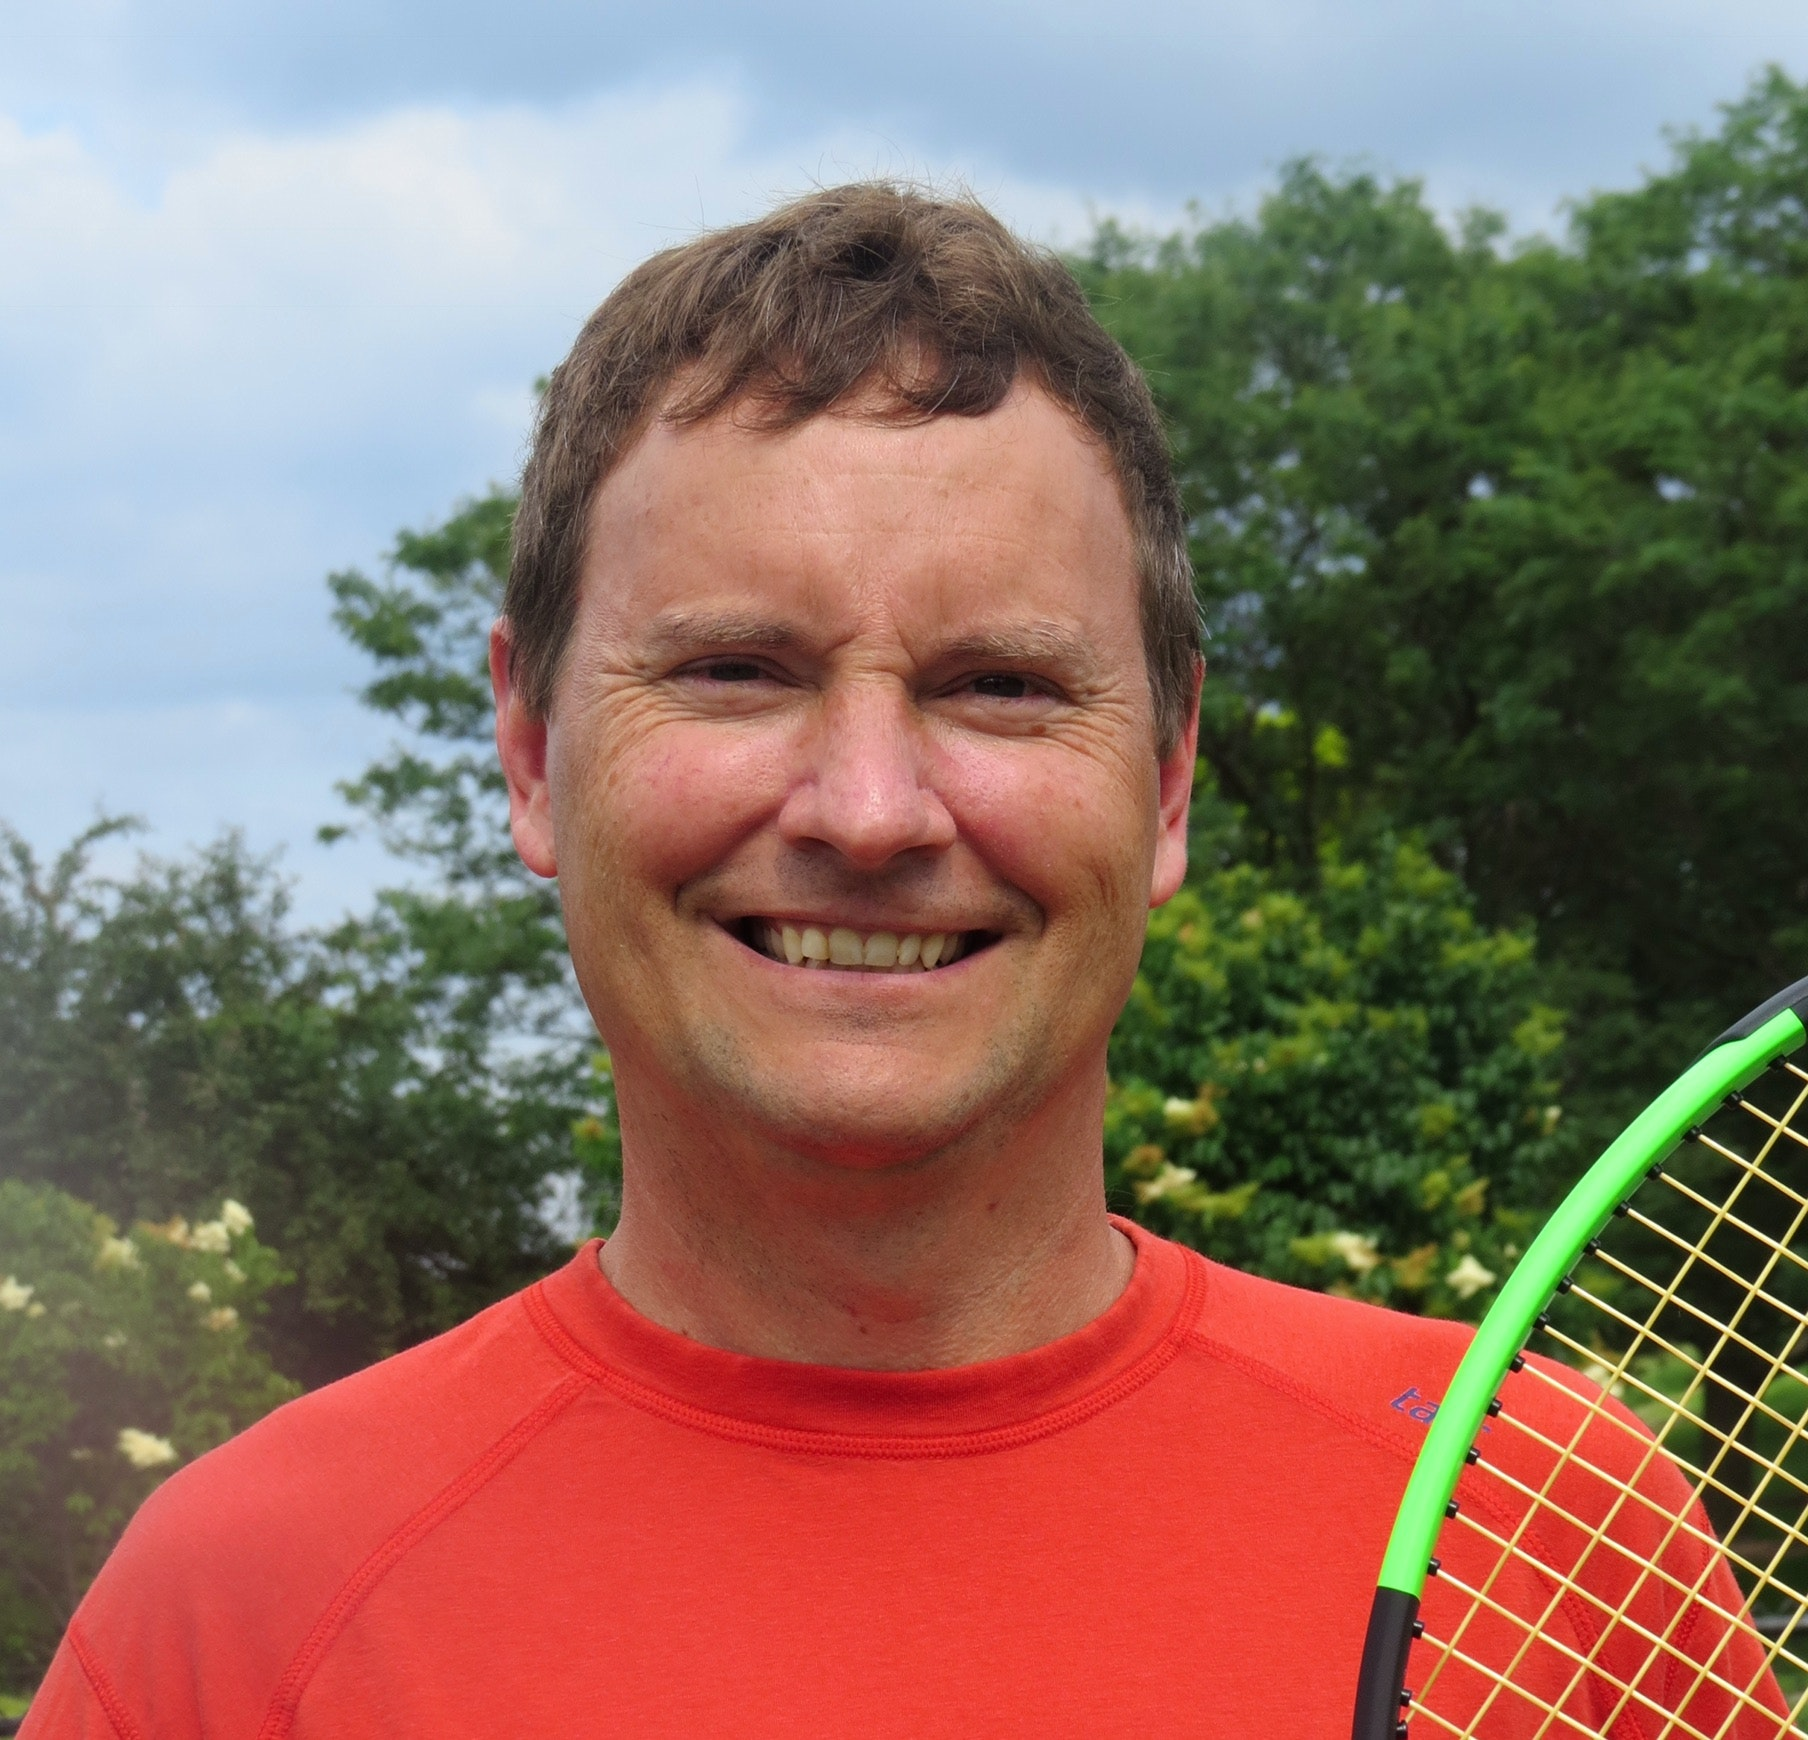 Mark E. teaches tennis lessons in Eagan, MN